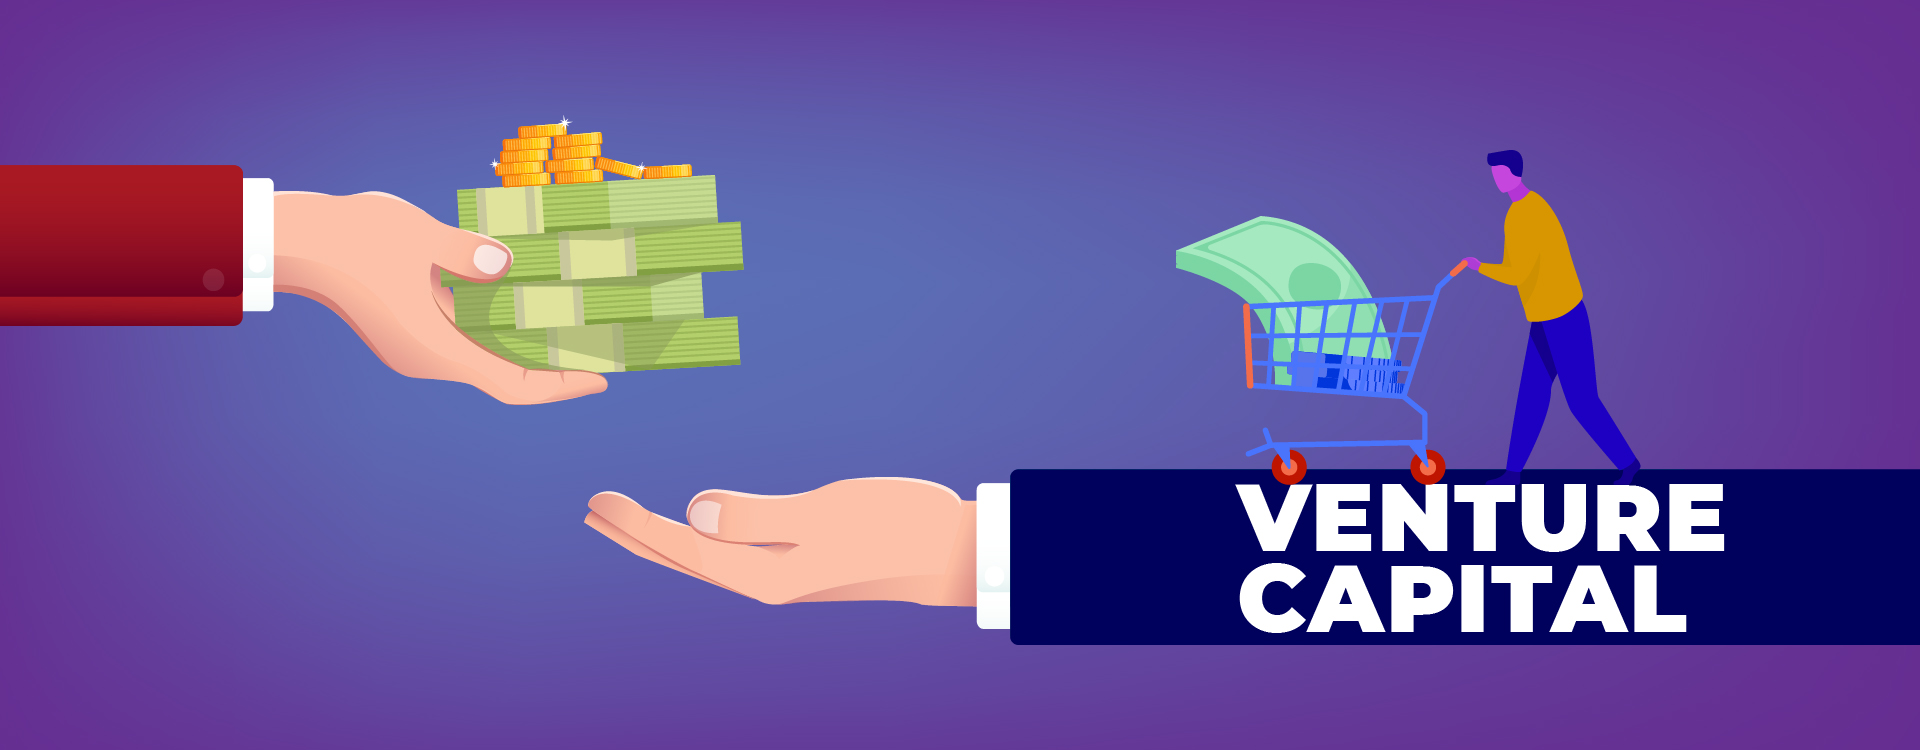 Venture Capital - What is it and how it works?